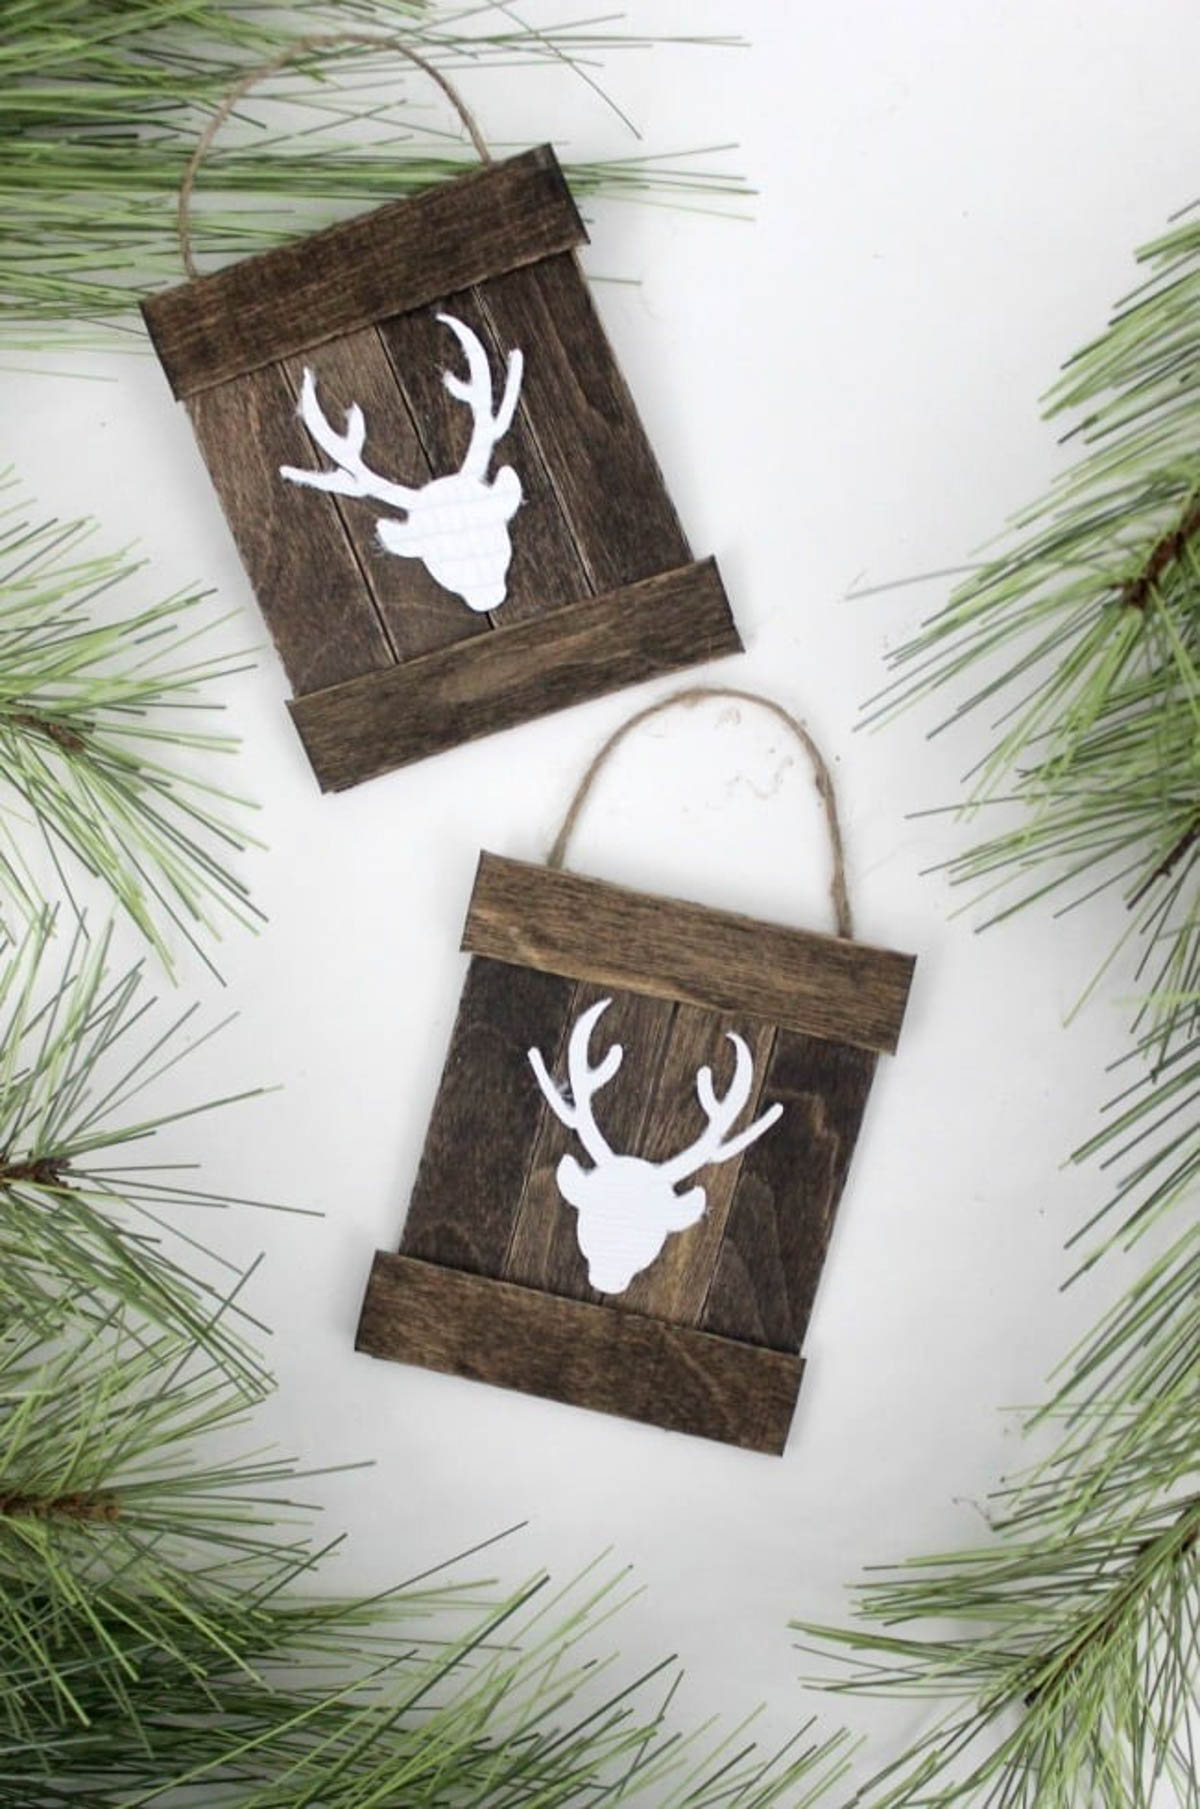 Two completed mini pallet deer ornaments